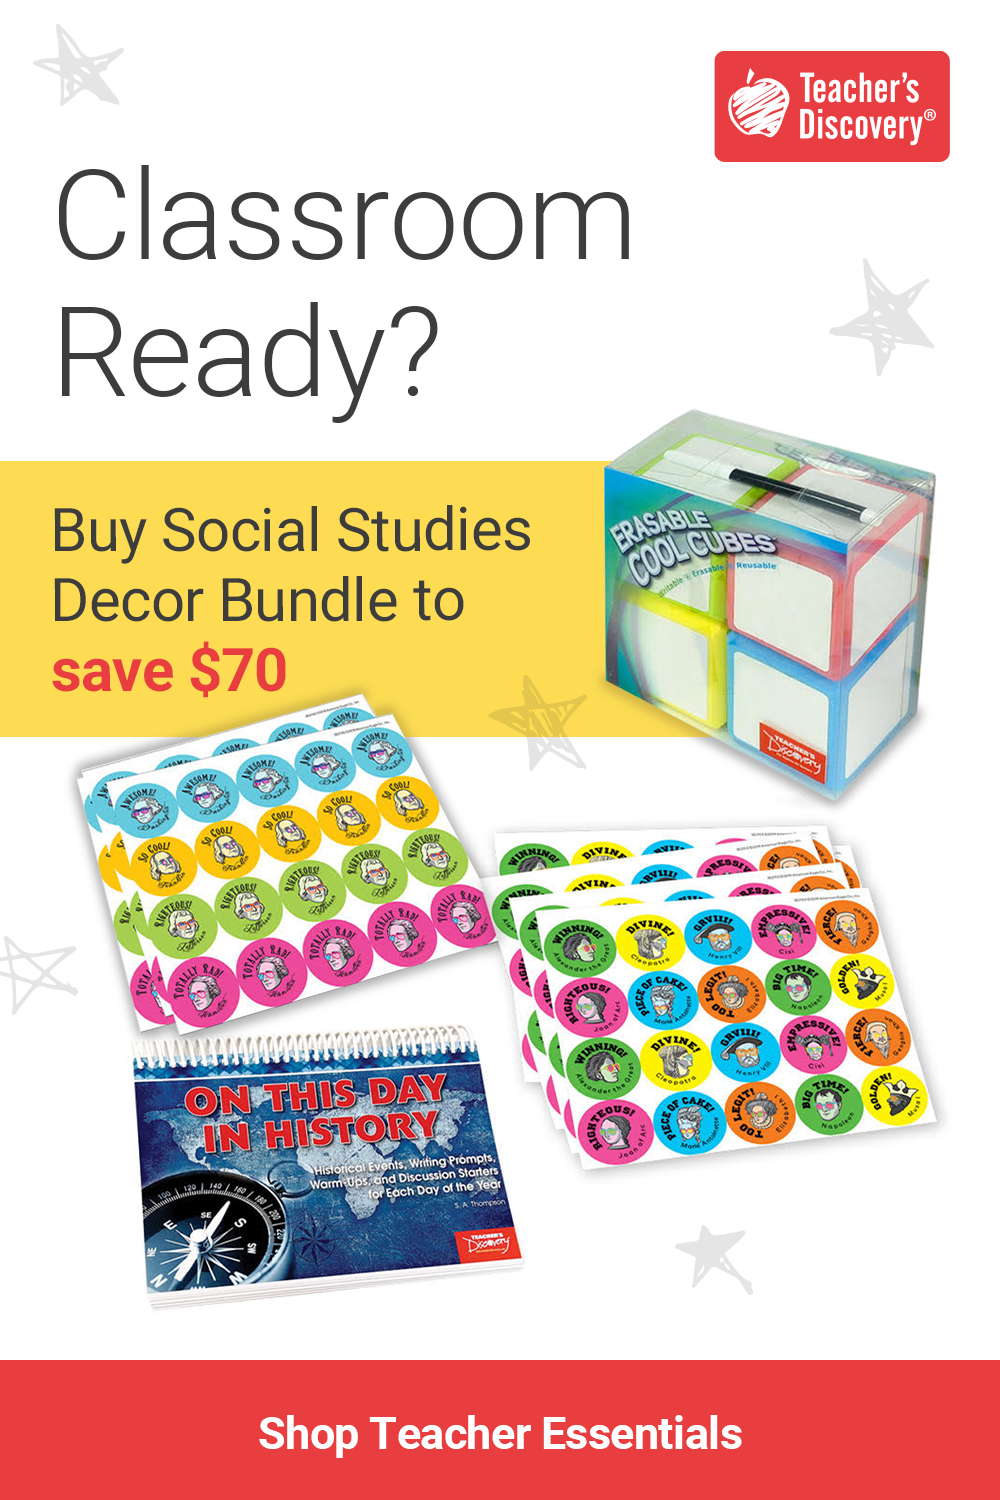 Get Classroom Ready With Teacher S Discovery Back To School Bundles School Essentials Back To School Essentials School Bundles [ 1500 x 1000 Pixel ]